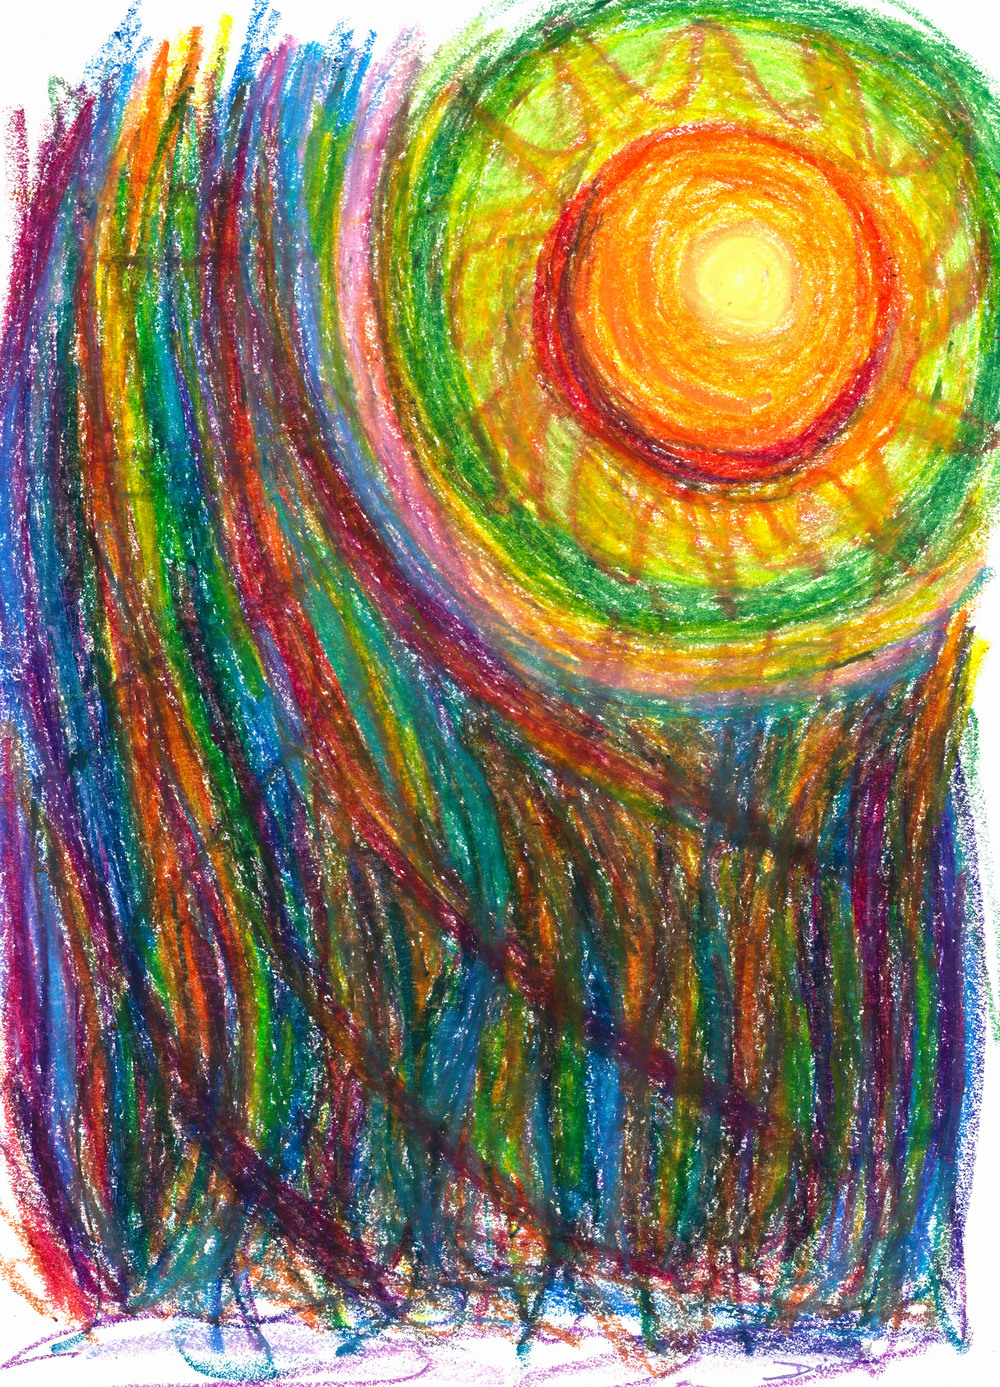 Starburst: The Nebular Dawning Of A New Myth And A New Age , 2012, Oil Pastel, 11 x 14 in